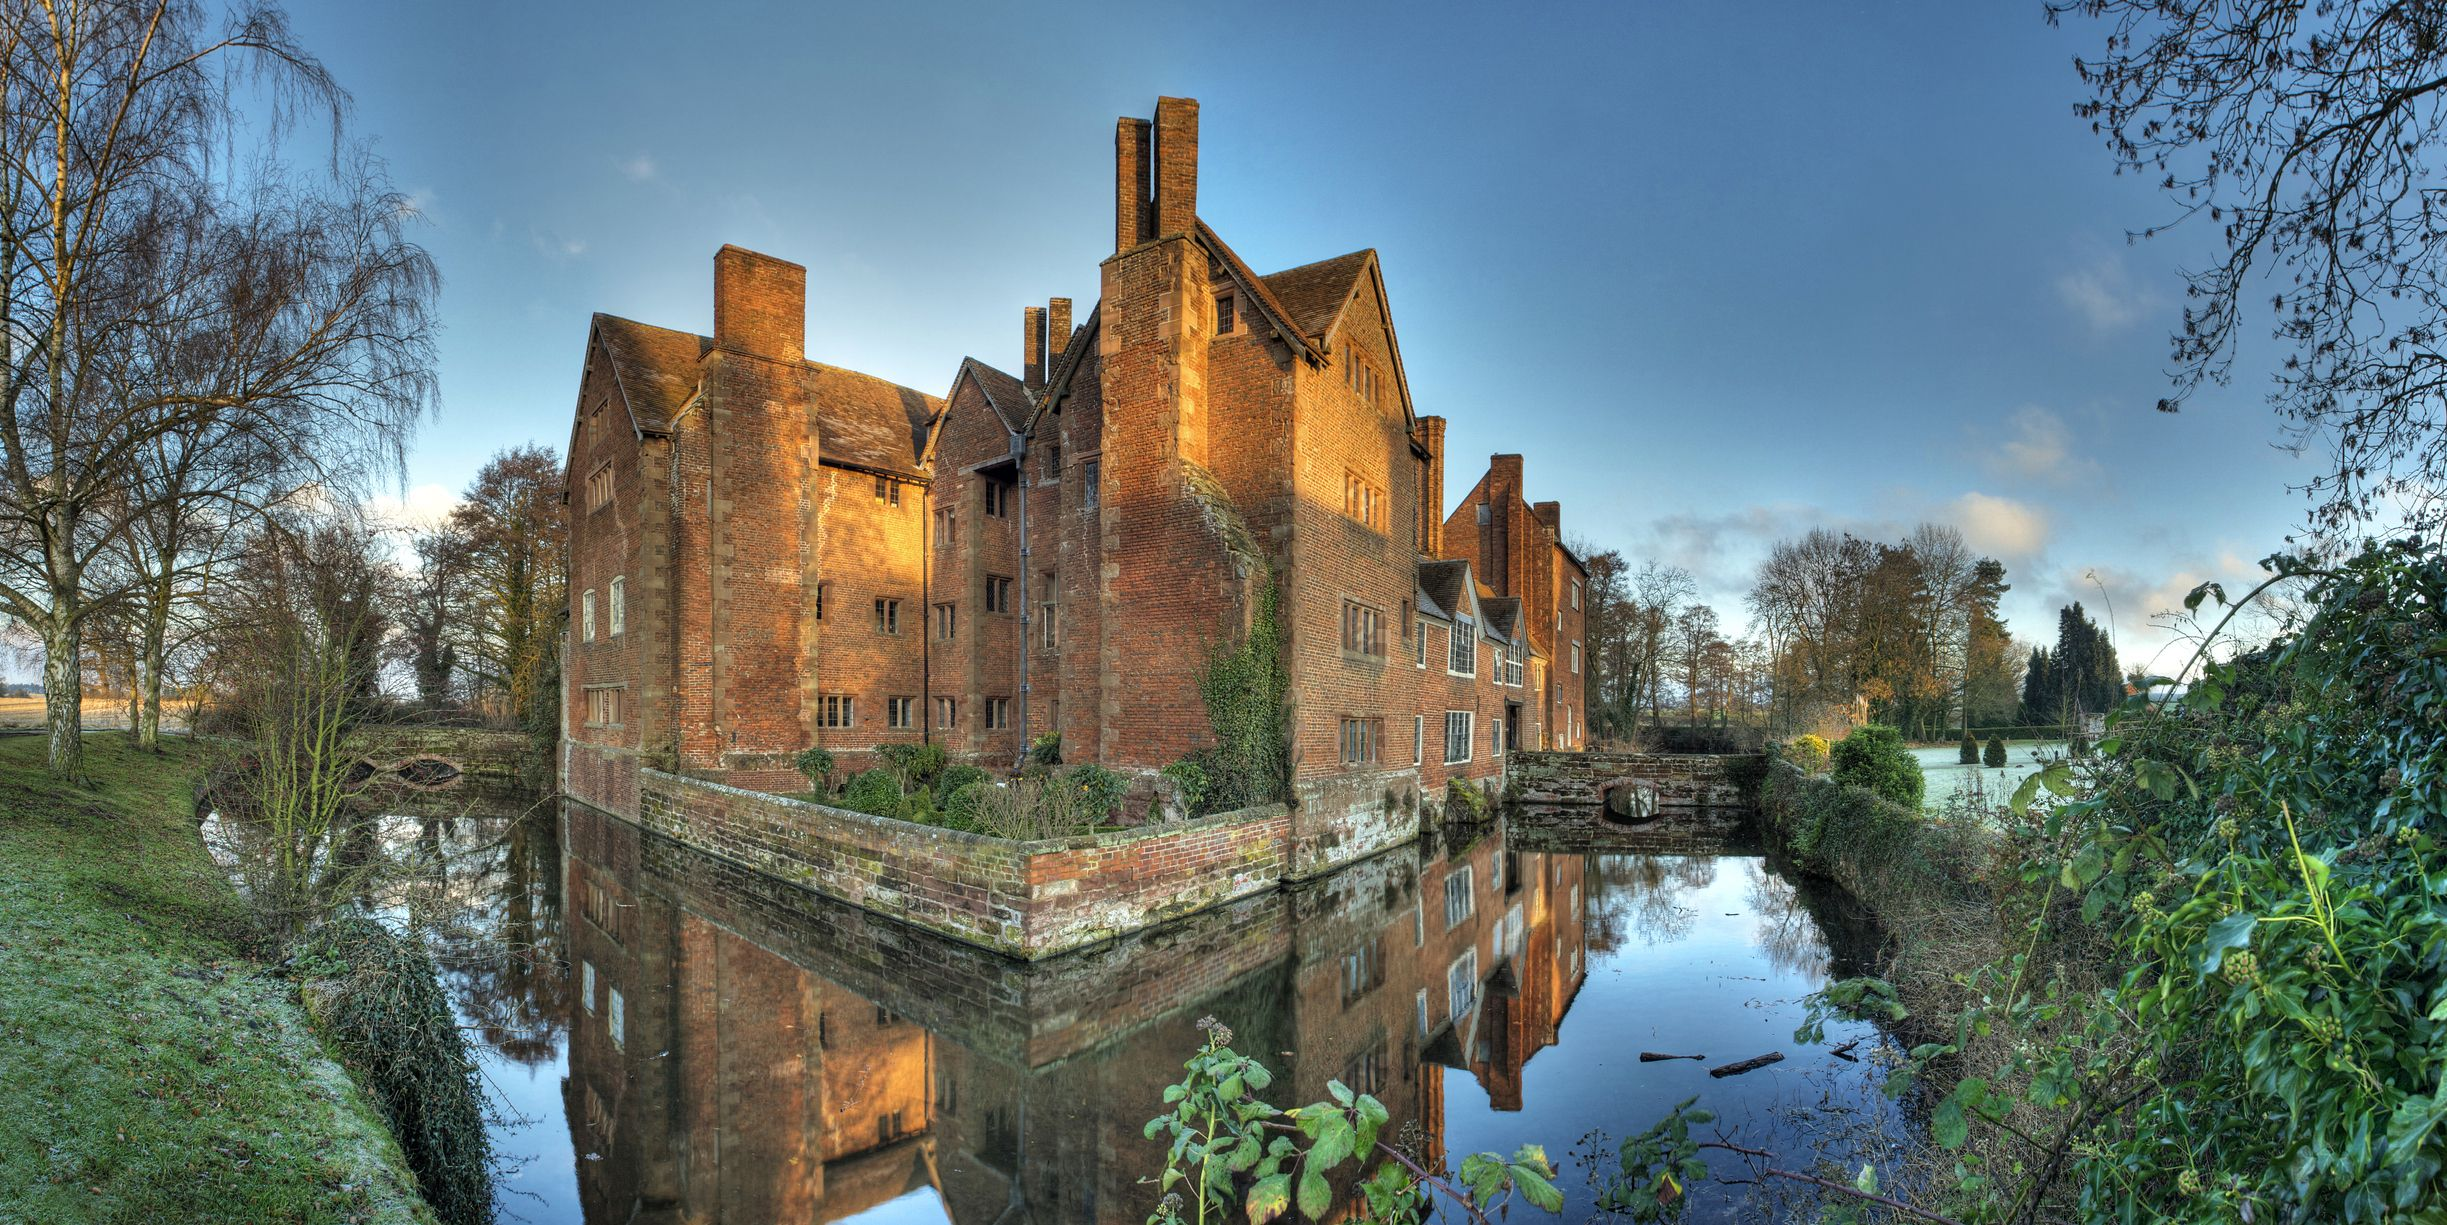 These heritage sites have been named the best hidden gems in the UK